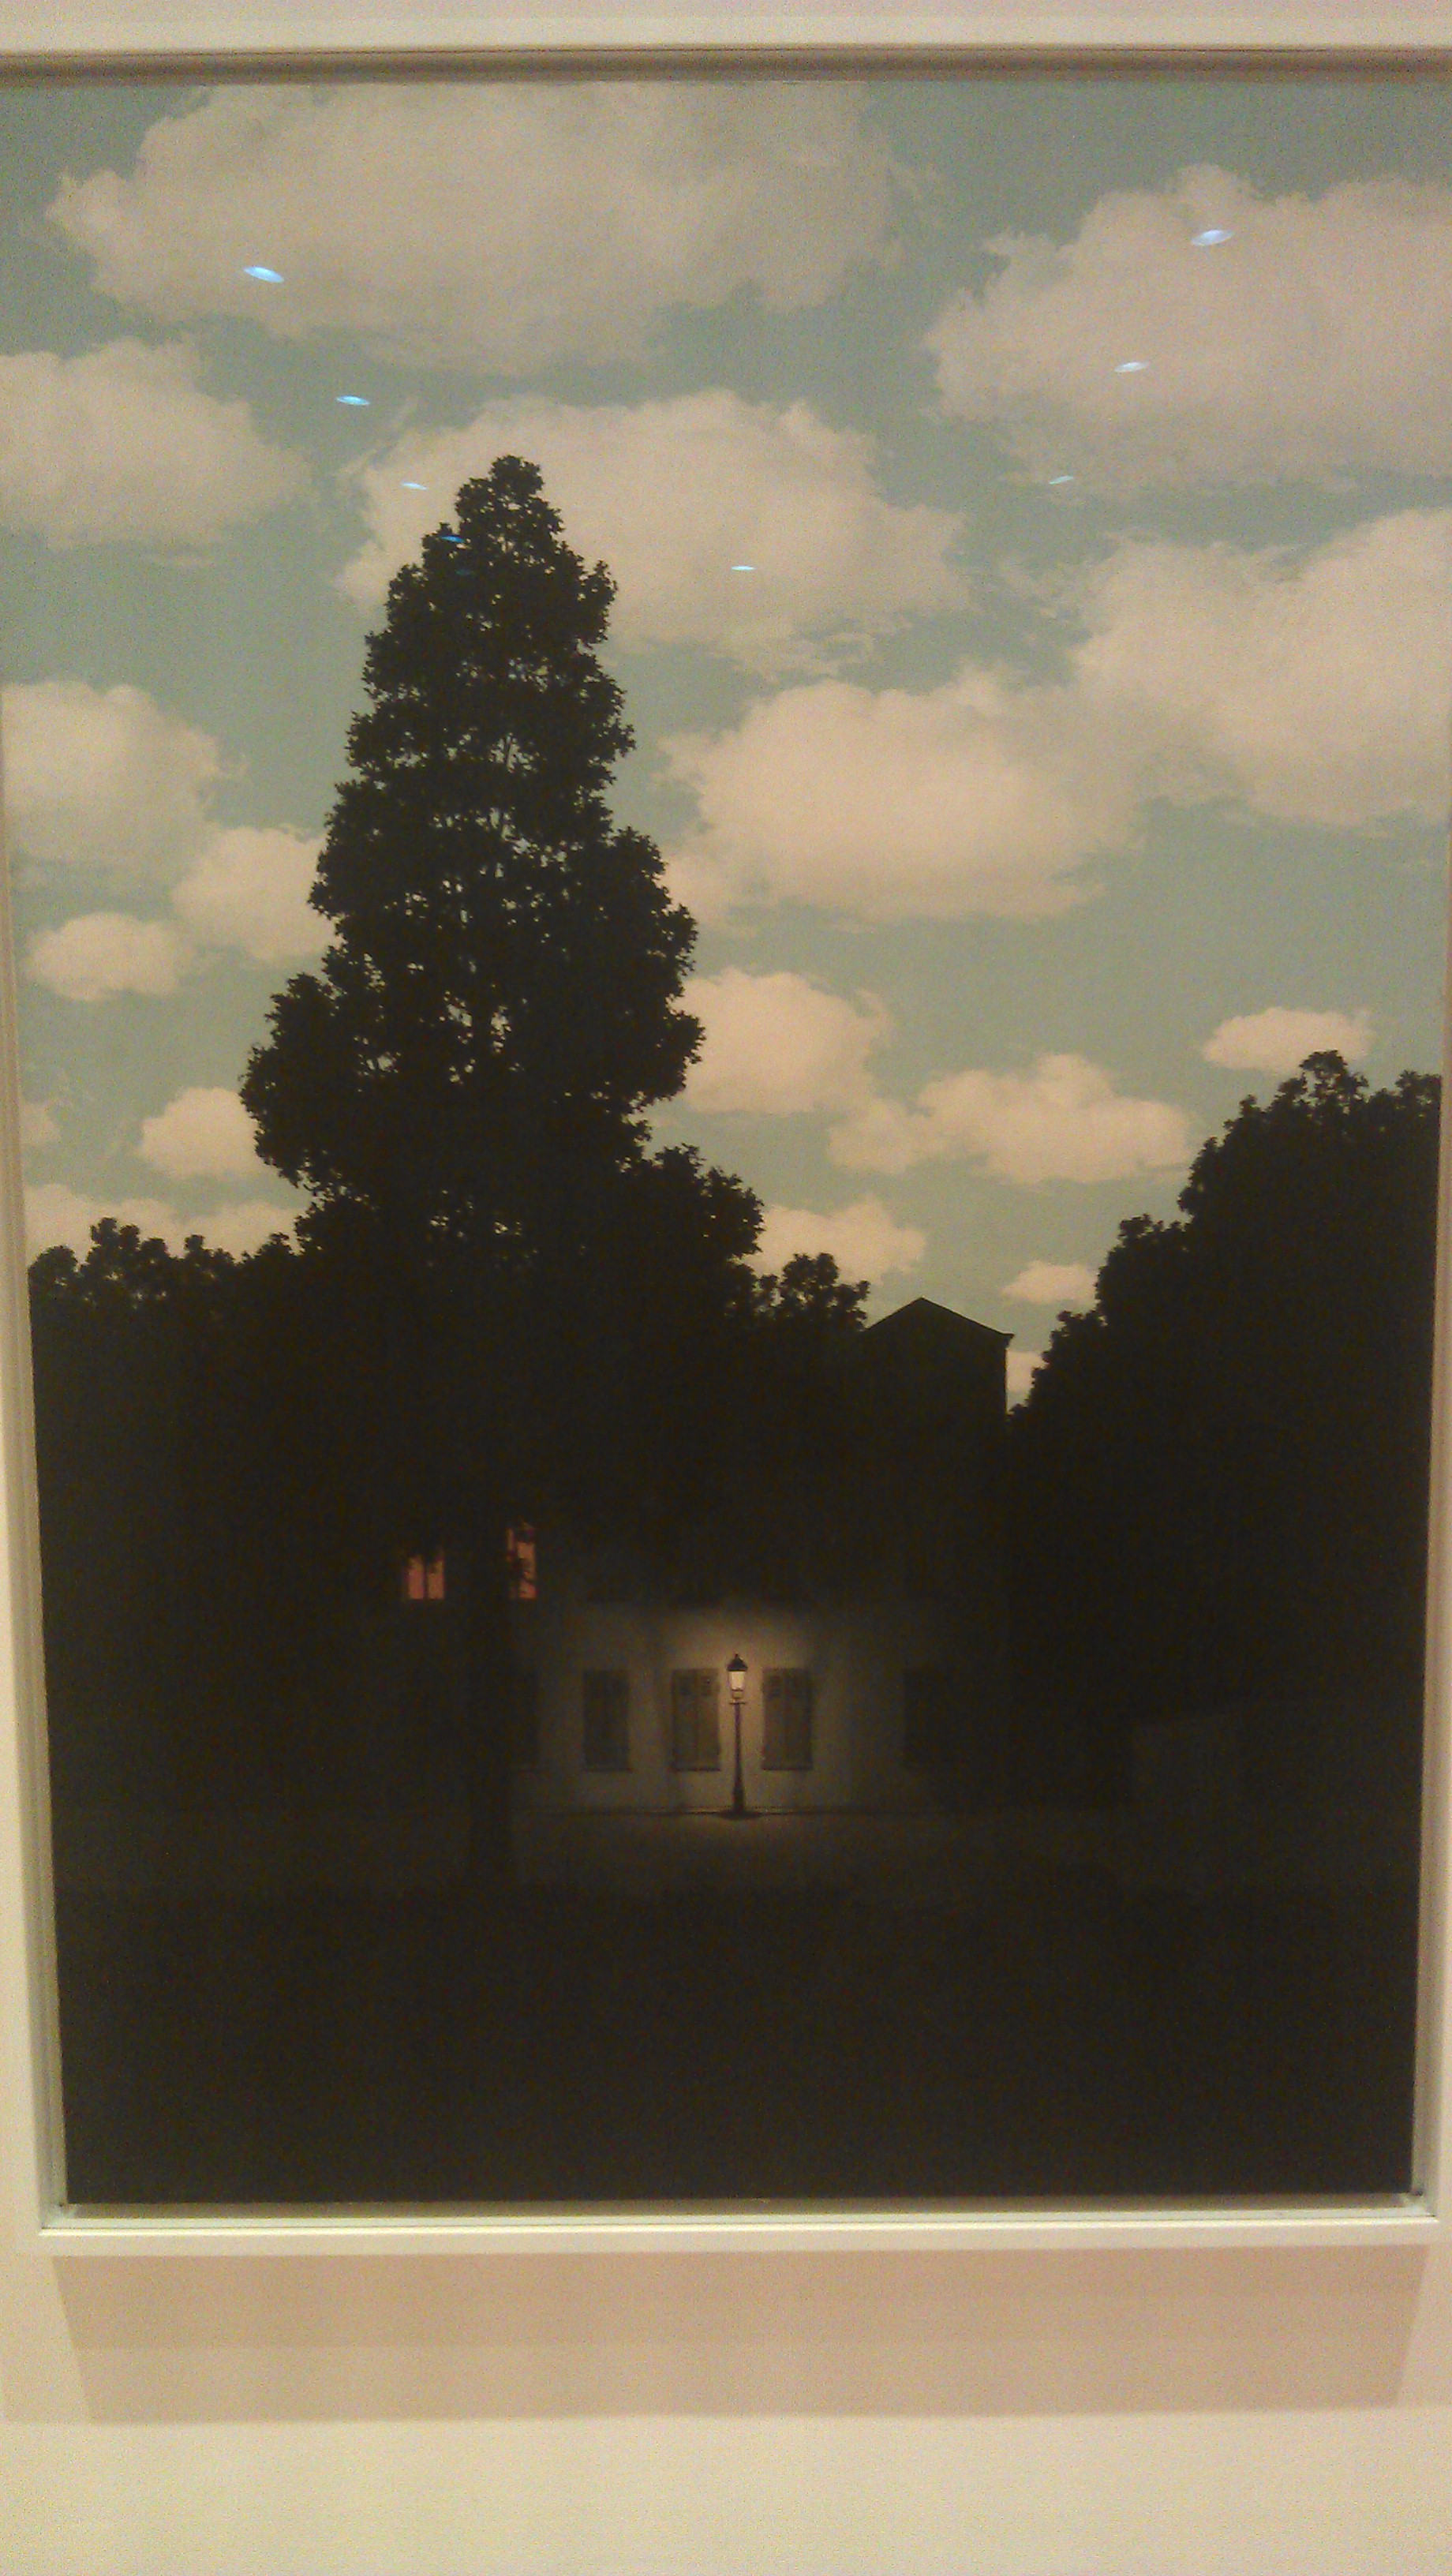 an analysis of homesickness a painting by rene magritte Homesickness is one of artworks by rene magritte artwork analysis, large  resolution images, user comments, interesting facts and much more.